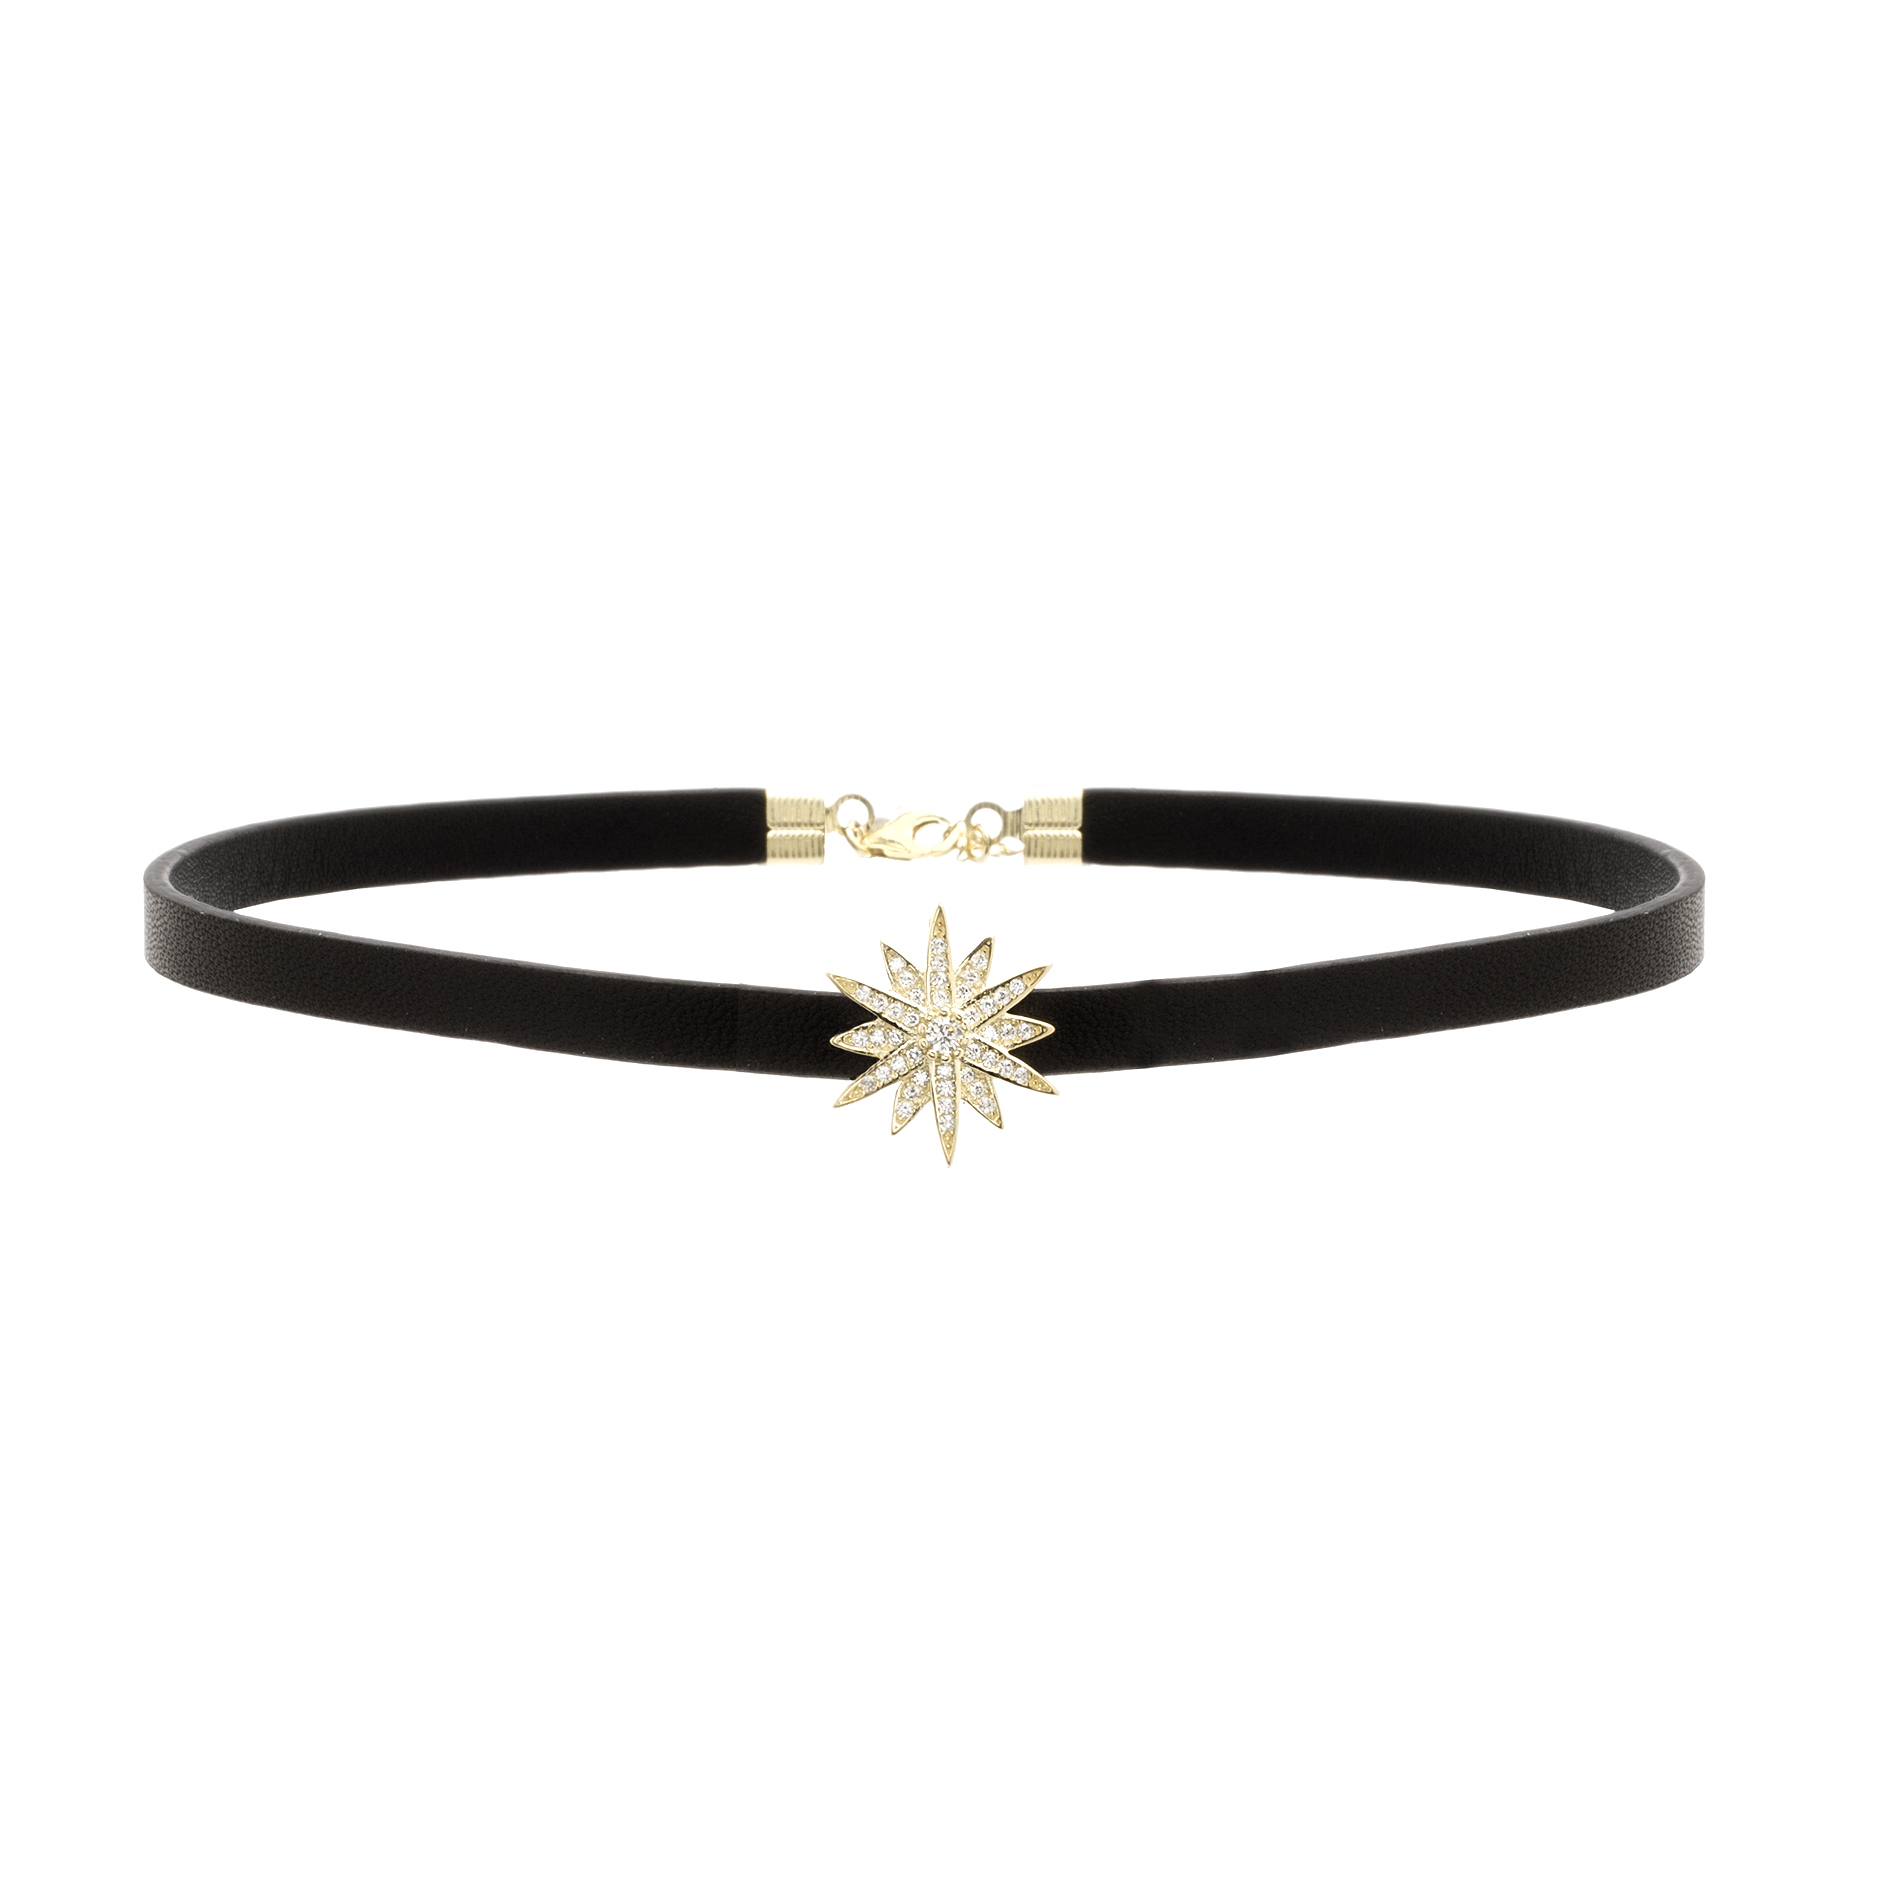 Cubic Zironia Starburst Choker Necklace in Yellow Gold over Sterling Silver and Leather